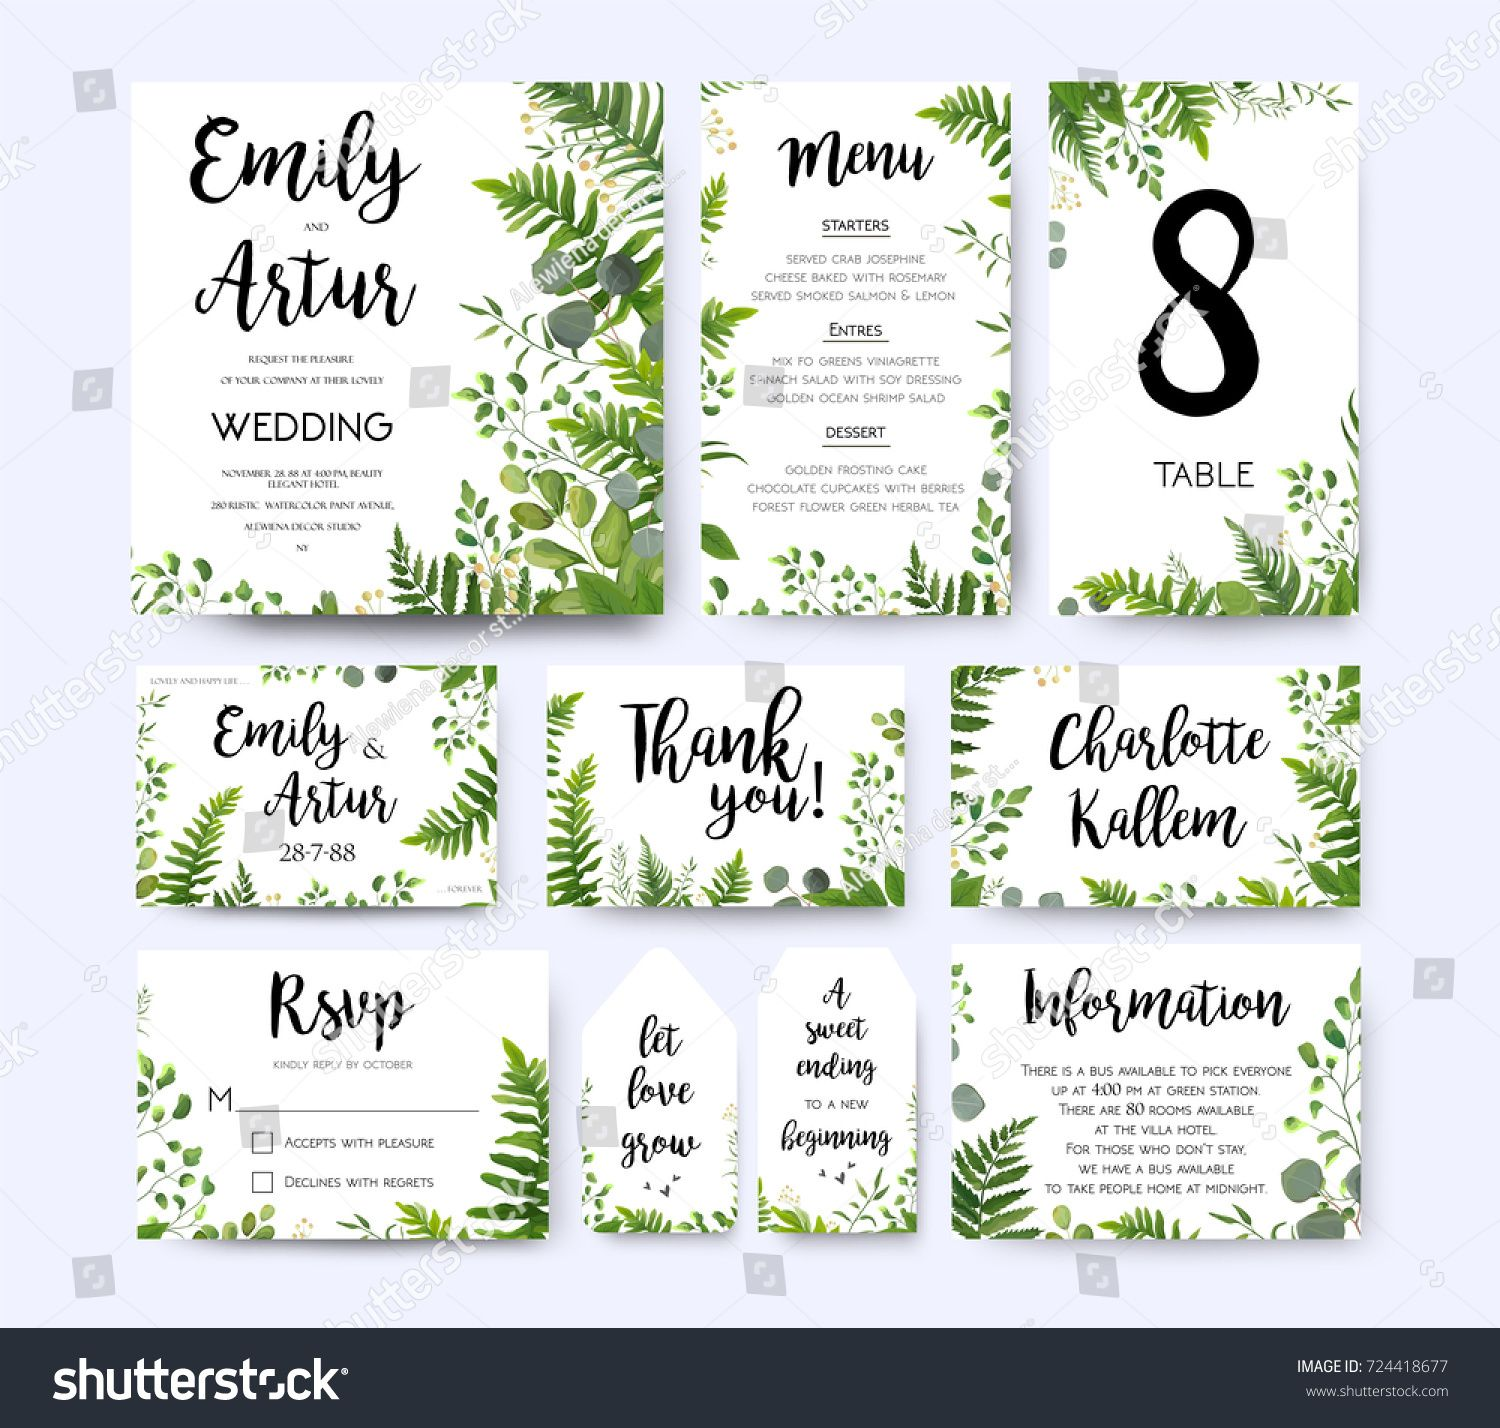 Wedding invite, invitation menu rsvp thank you card vector floral g ...